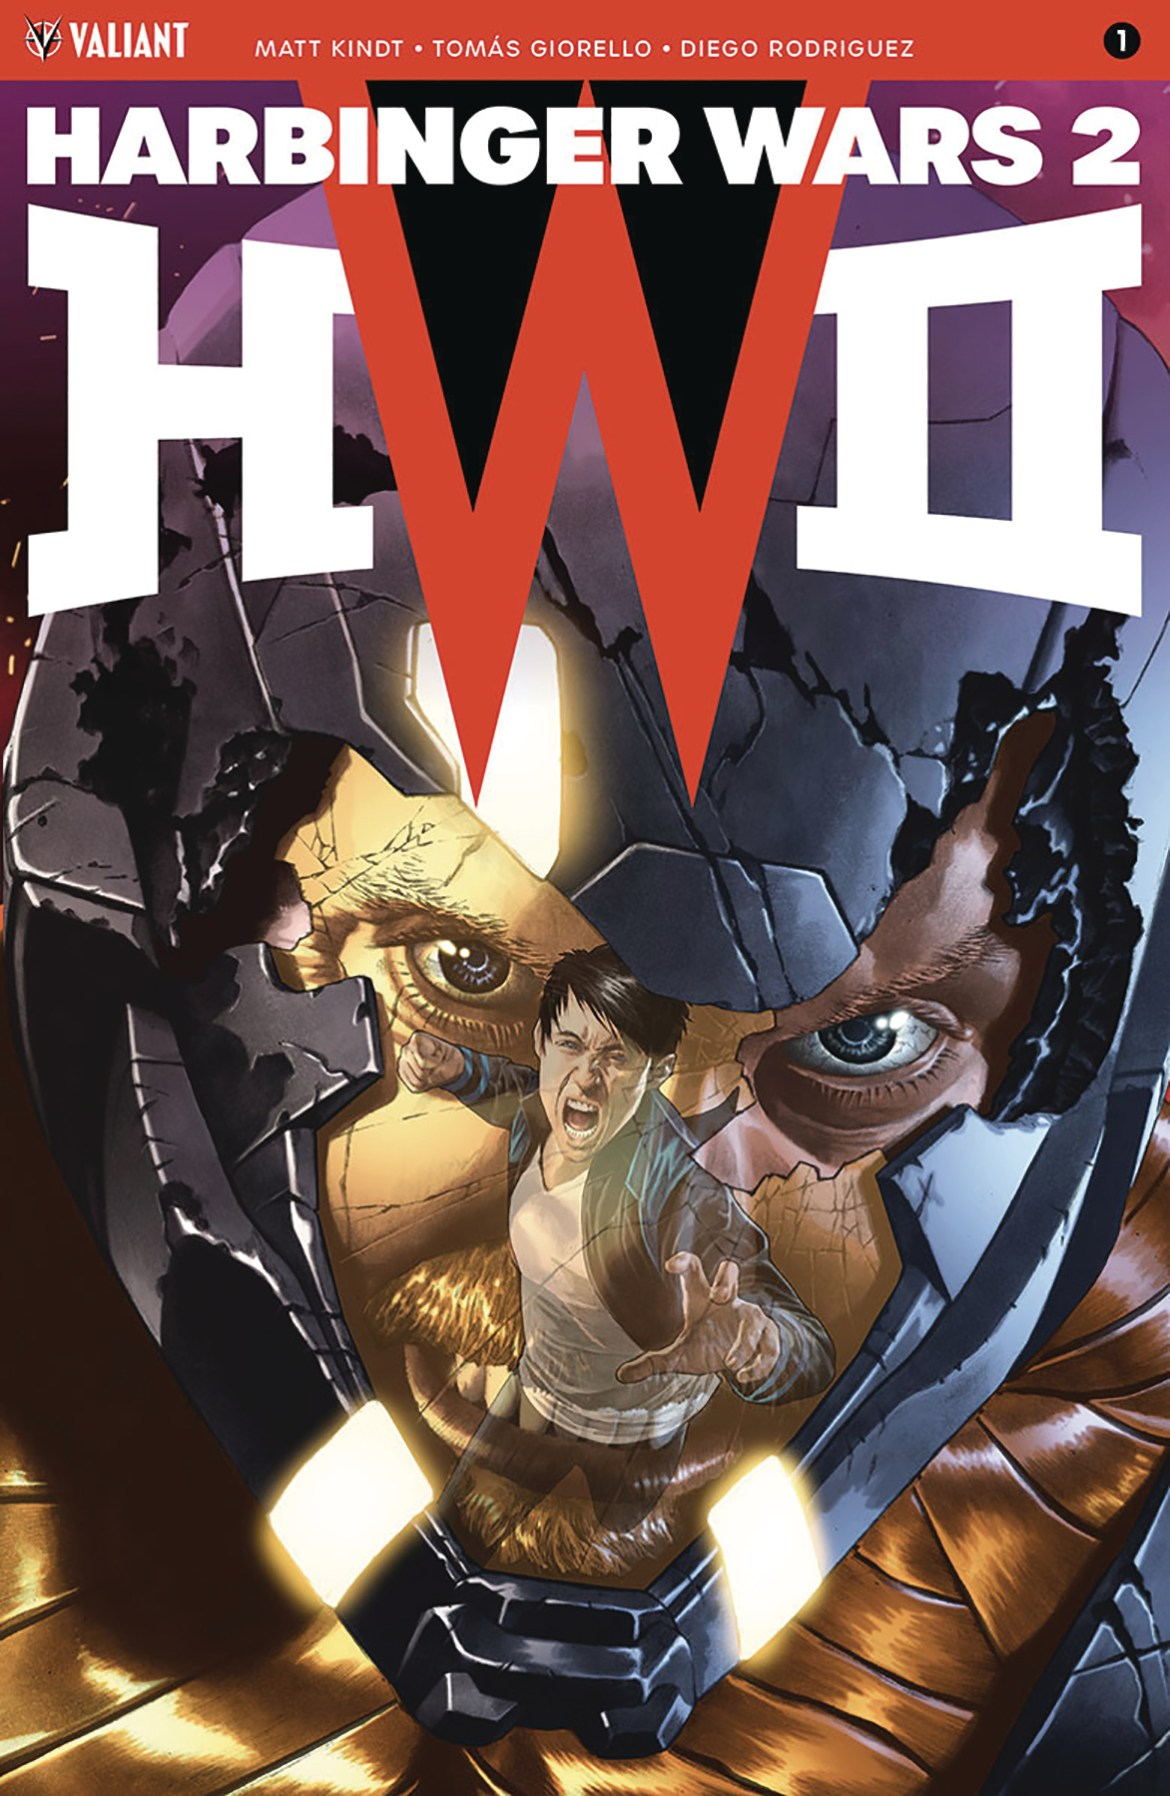 723195_d8d65e03fed00f912483043a319677cf4a8c6860 ComicList: Valiant Entertainment New Releases for 05/30/2018